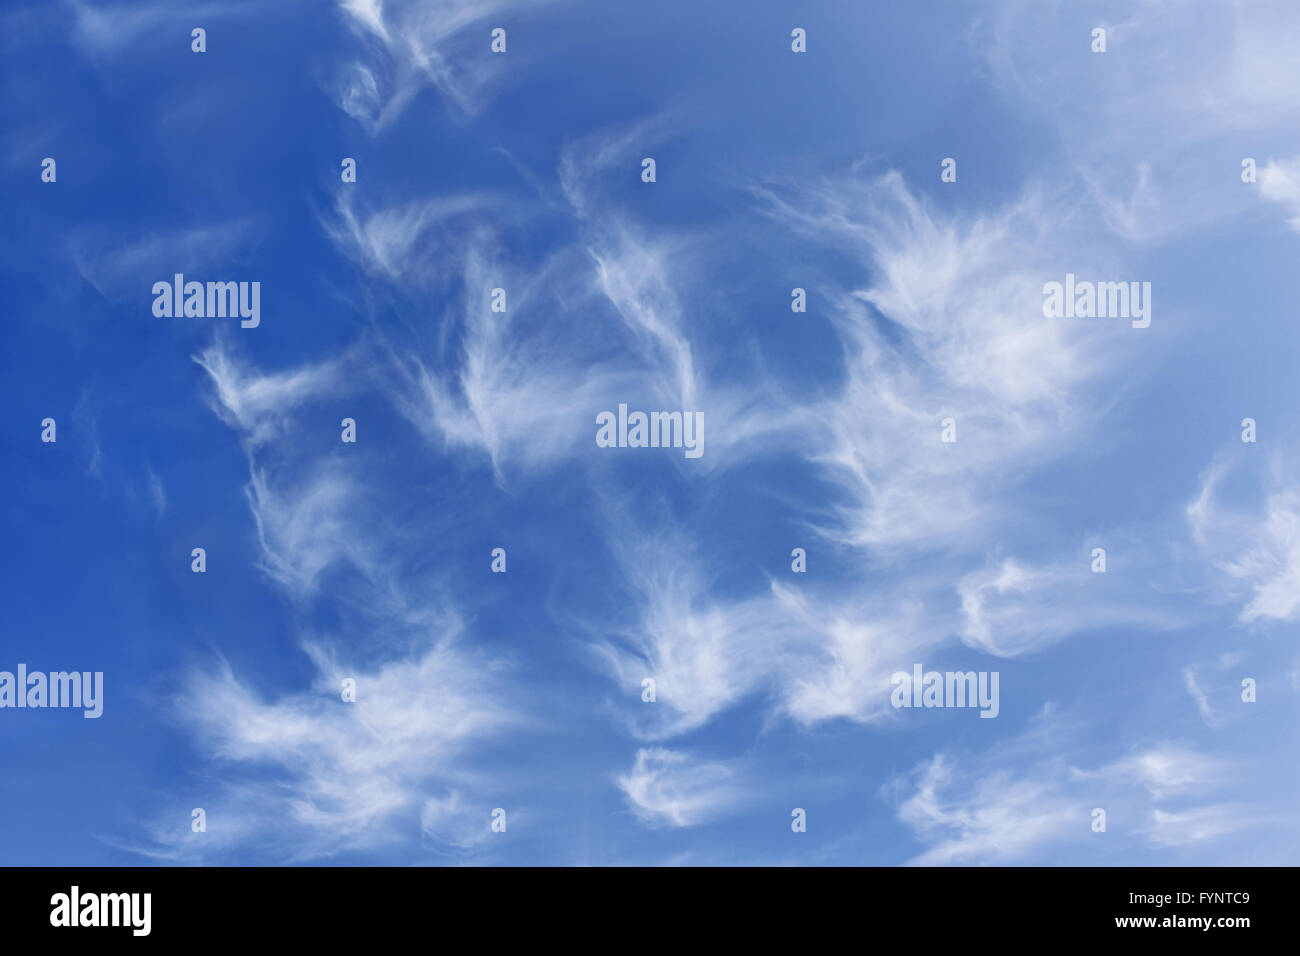 Group of fanciful white clouds - Stock Image